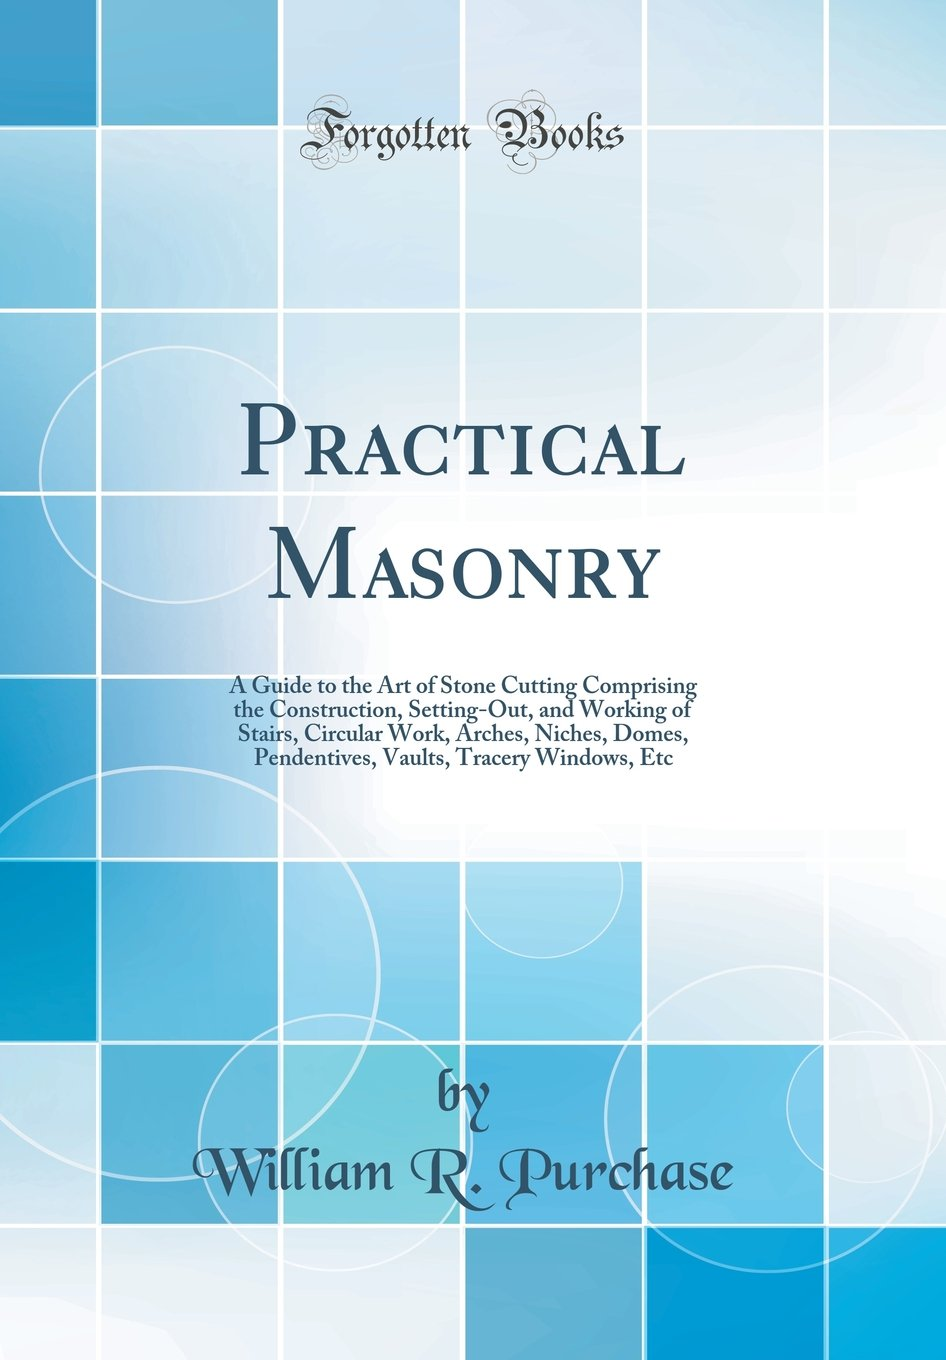 Practical Masonry: A Guide to the Art of Stone Cutting Comprising the Construction, Setting-Out, and Working of Stairs, Circular Work, Arches, Niches. Tracery Windows, Etc (Classic Reprint)